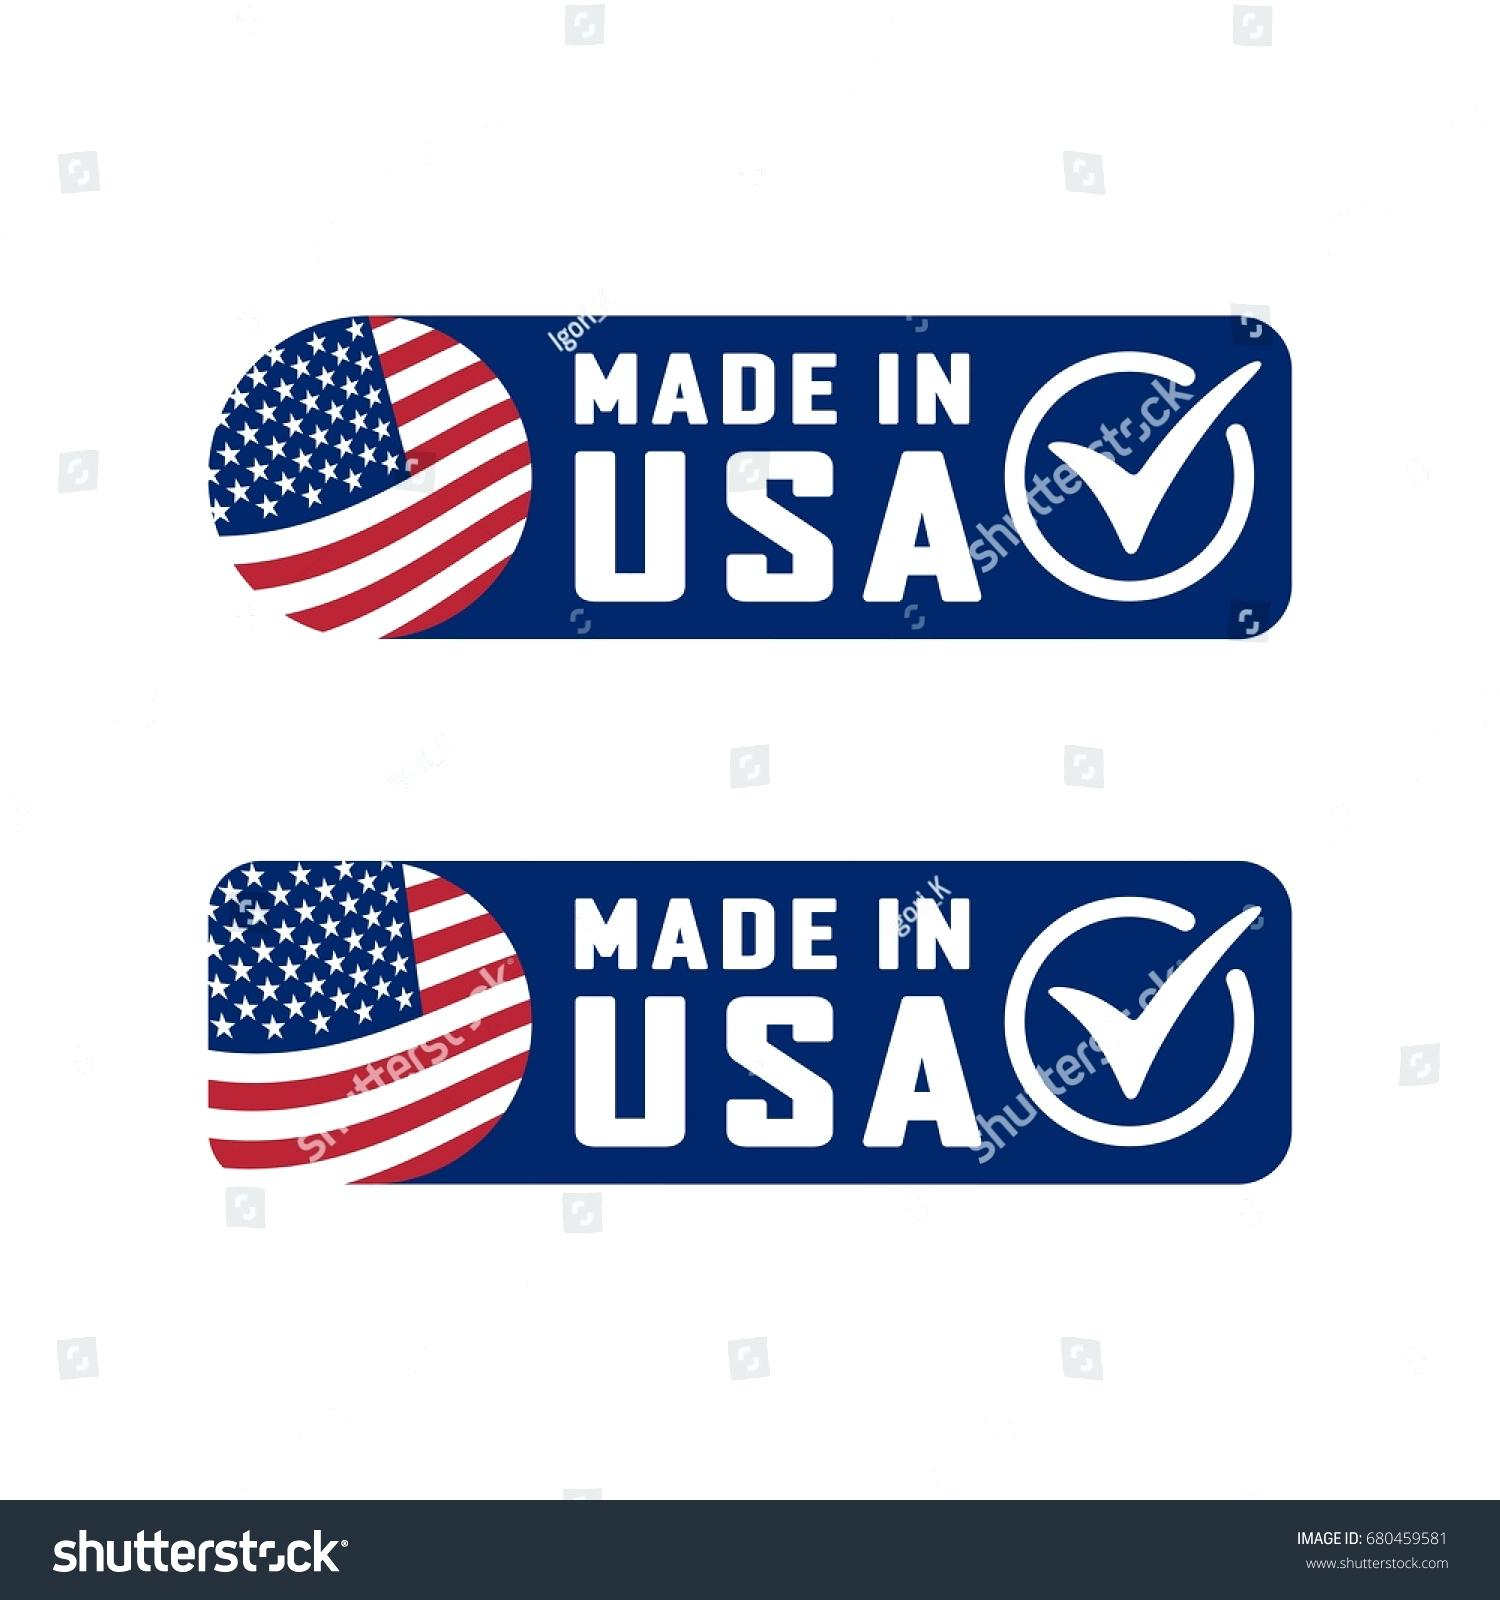 1500x1600 I Voted Sticker Template